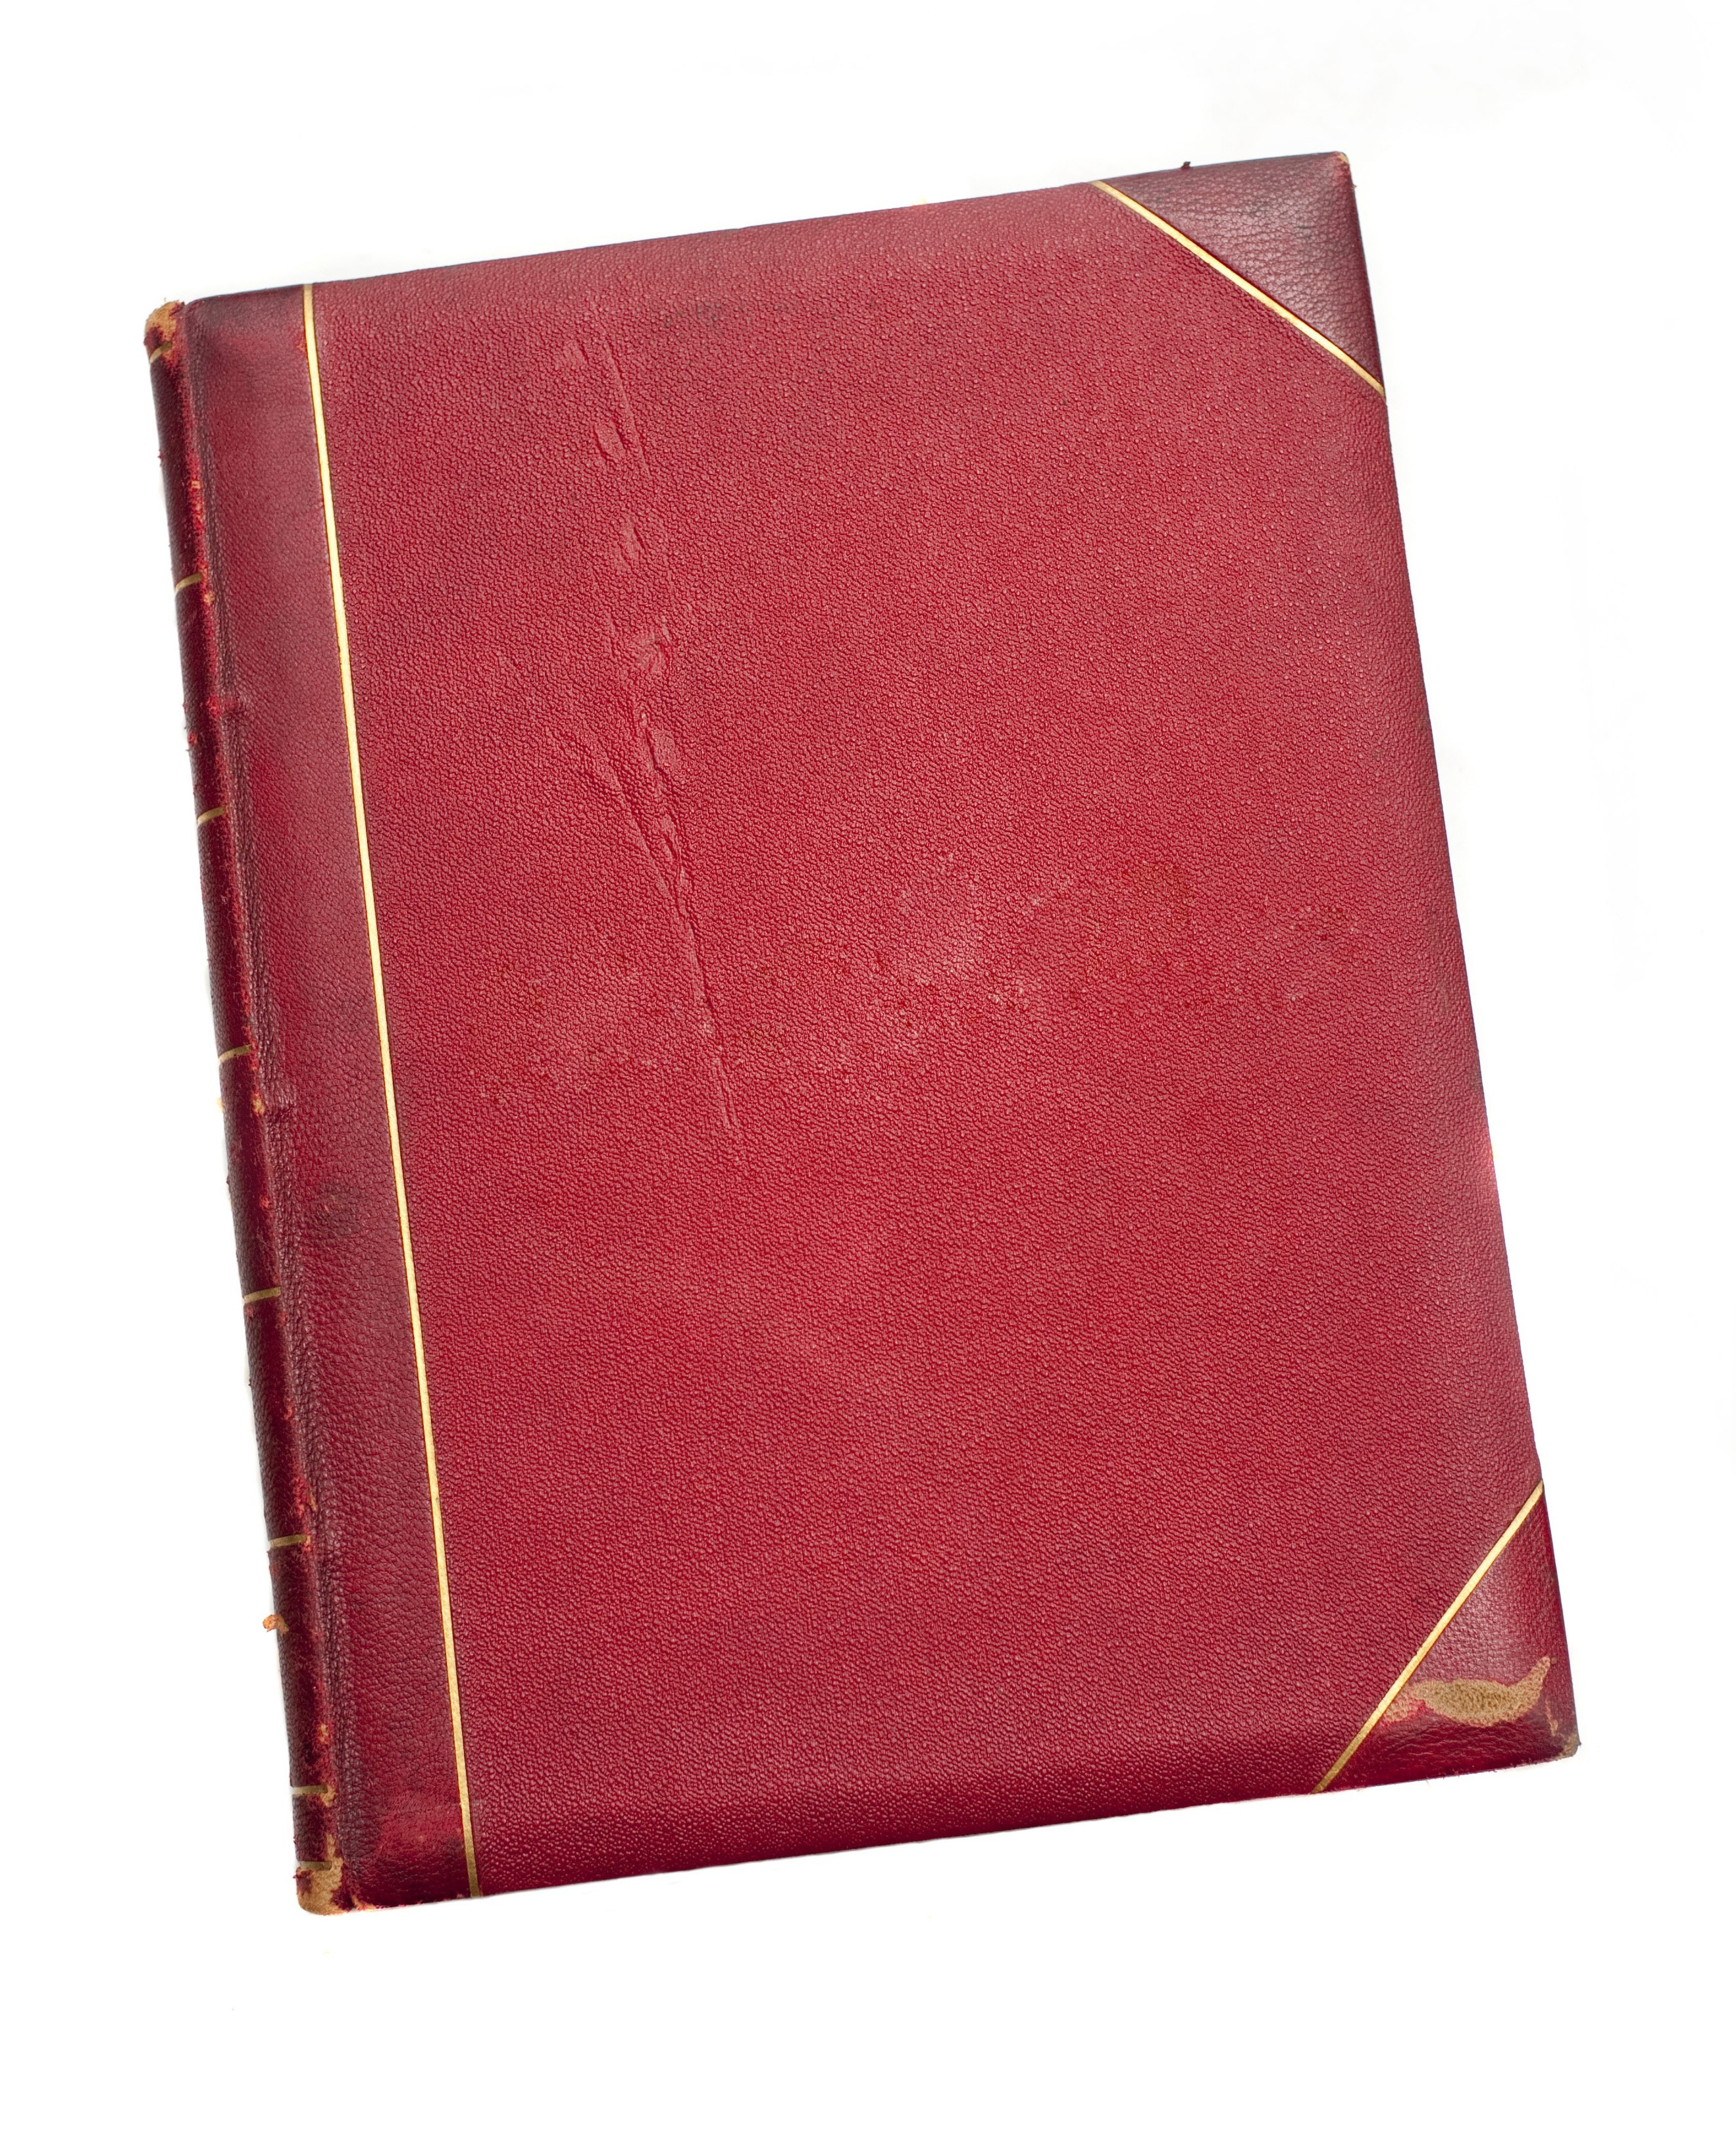 Old scuffed red book with leather binding and gilt tooling lying isolated on a white surface